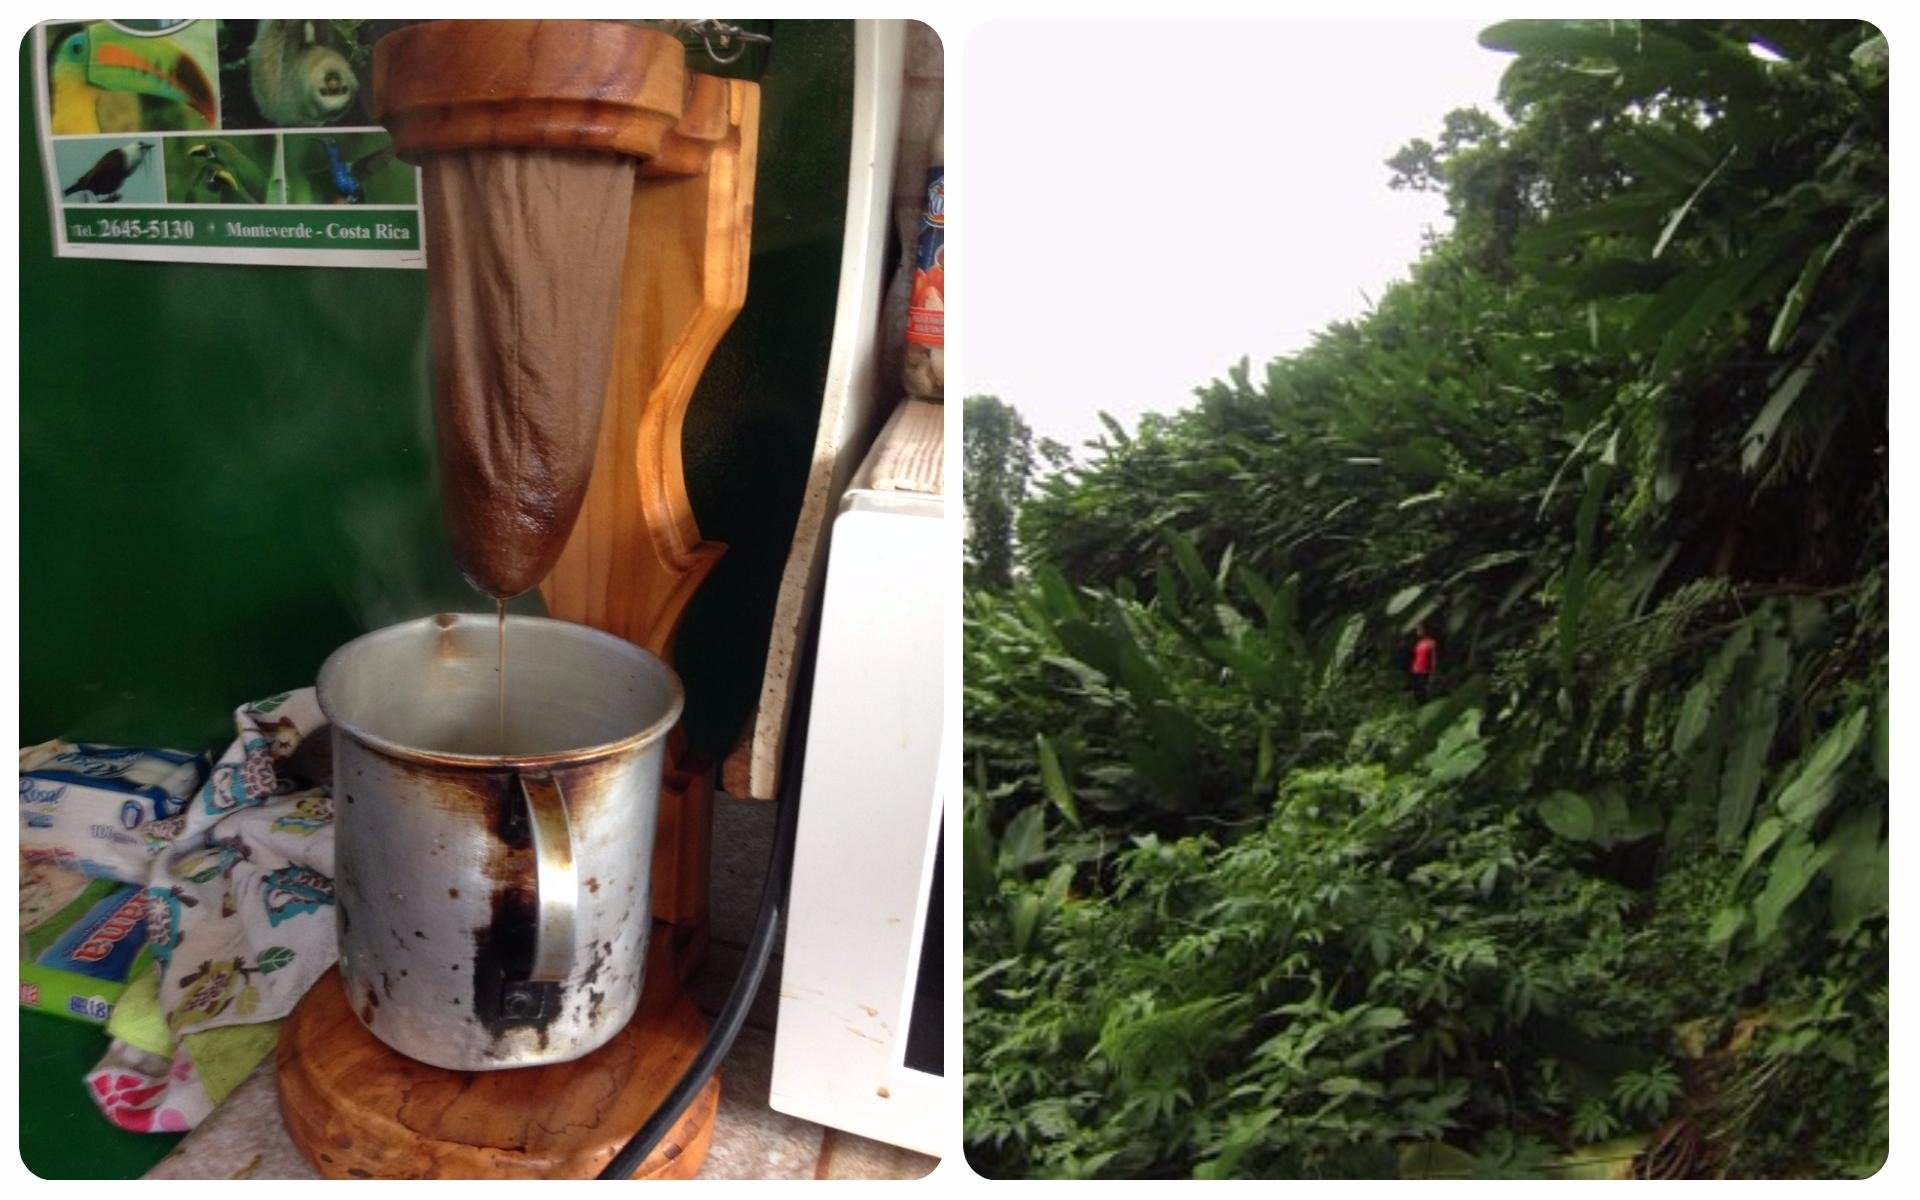 Costa Rica, a beautiful country with lush jungles producing amazing coffee. Coffee is usually made by the drip method through a material sock in a stand.